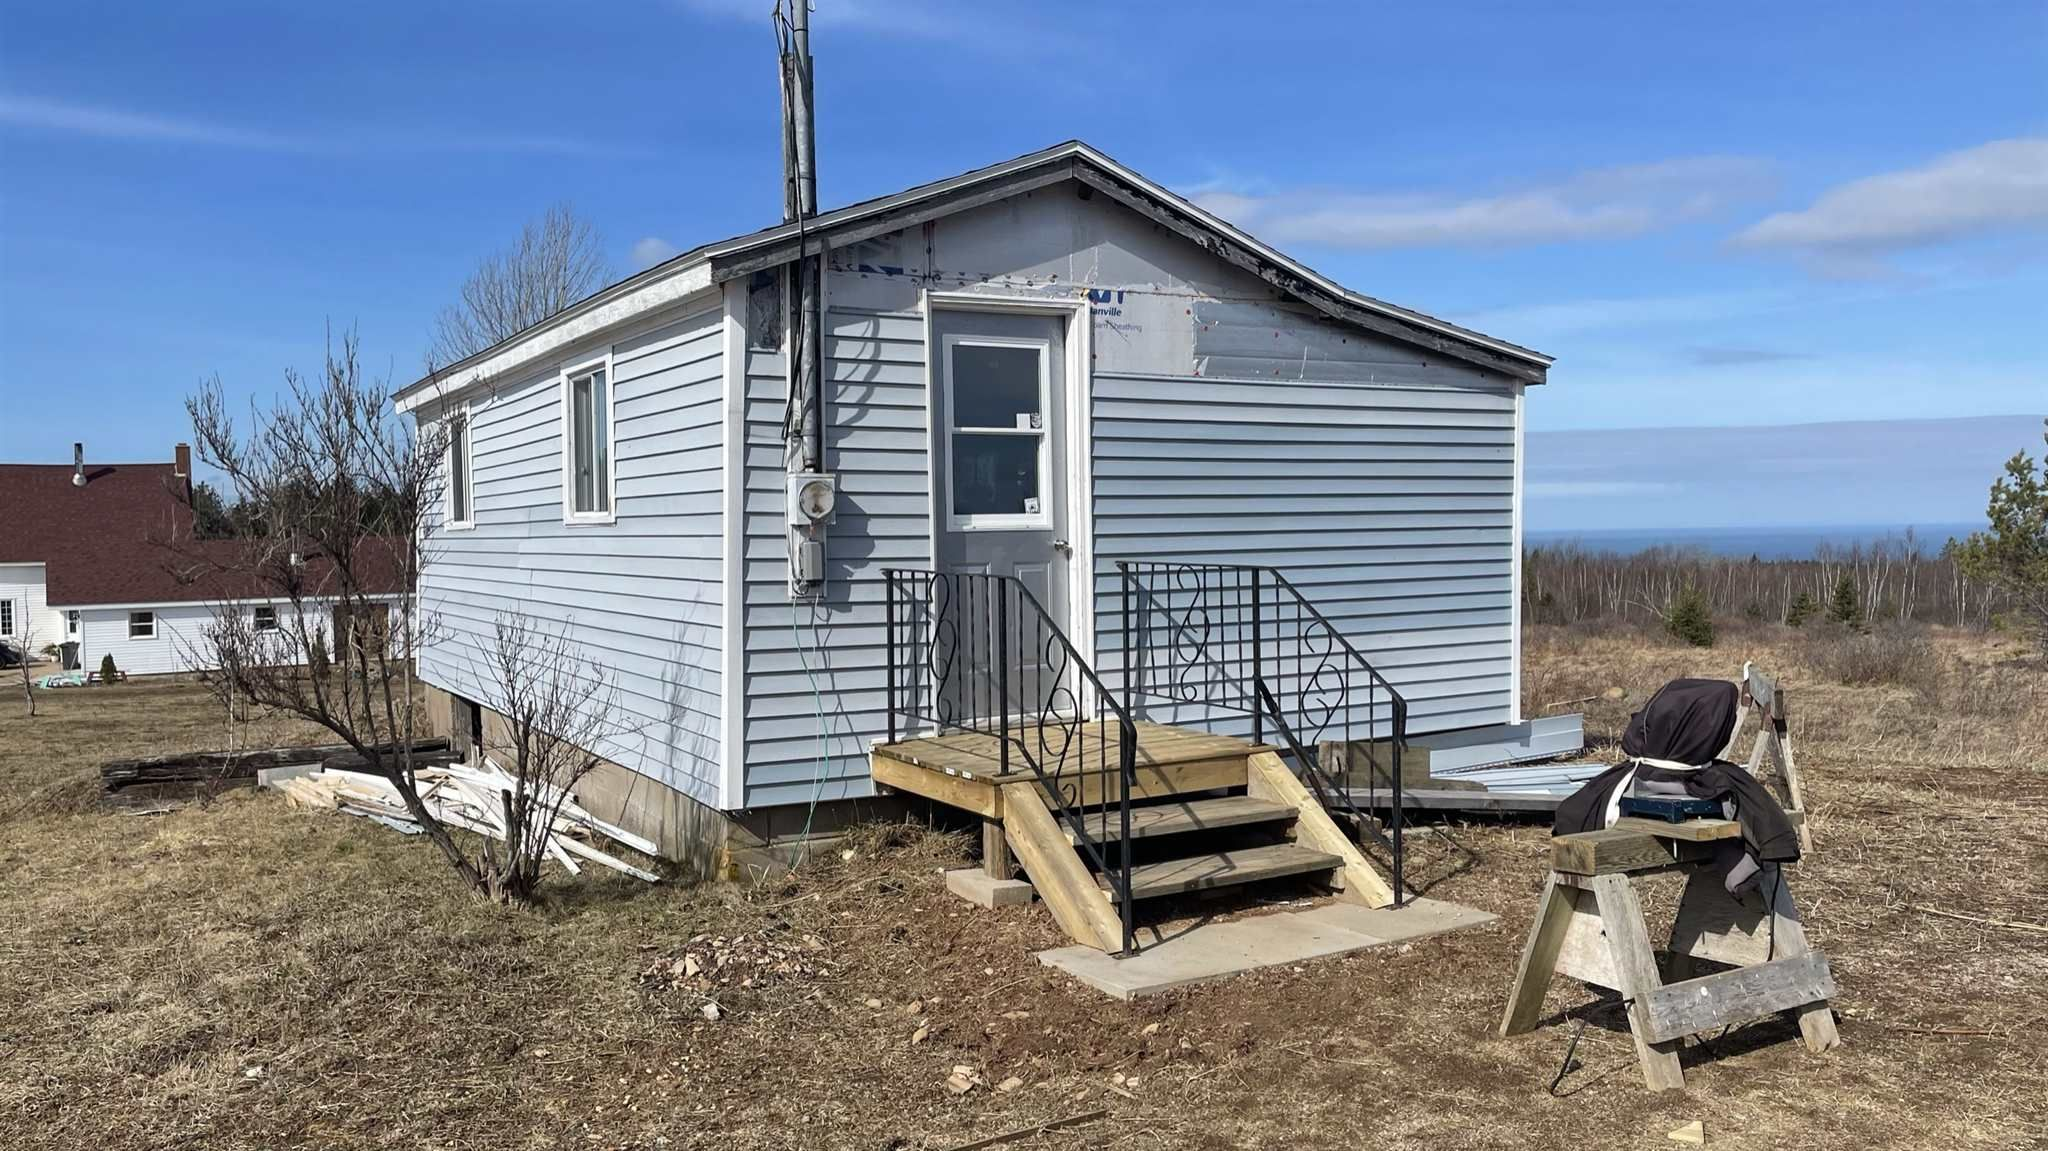 Main Photo: 2115 Arlington Road in Mount Rose: 400-Annapolis County Residential for sale (Annapolis Valley)  : MLS®# 202023059